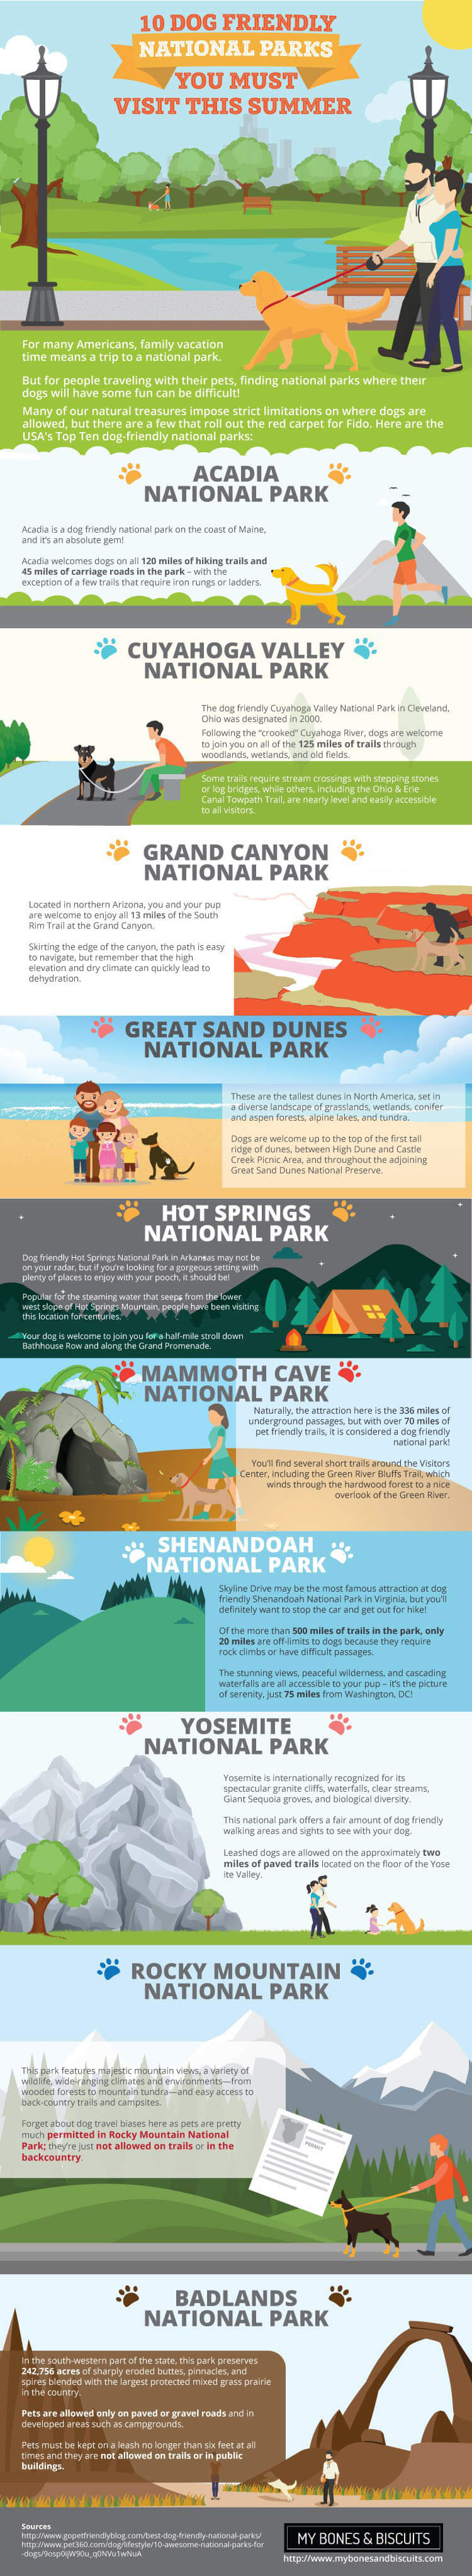 dog park infographic, infogram - PRESS TO SEE THE FULL SIZE!